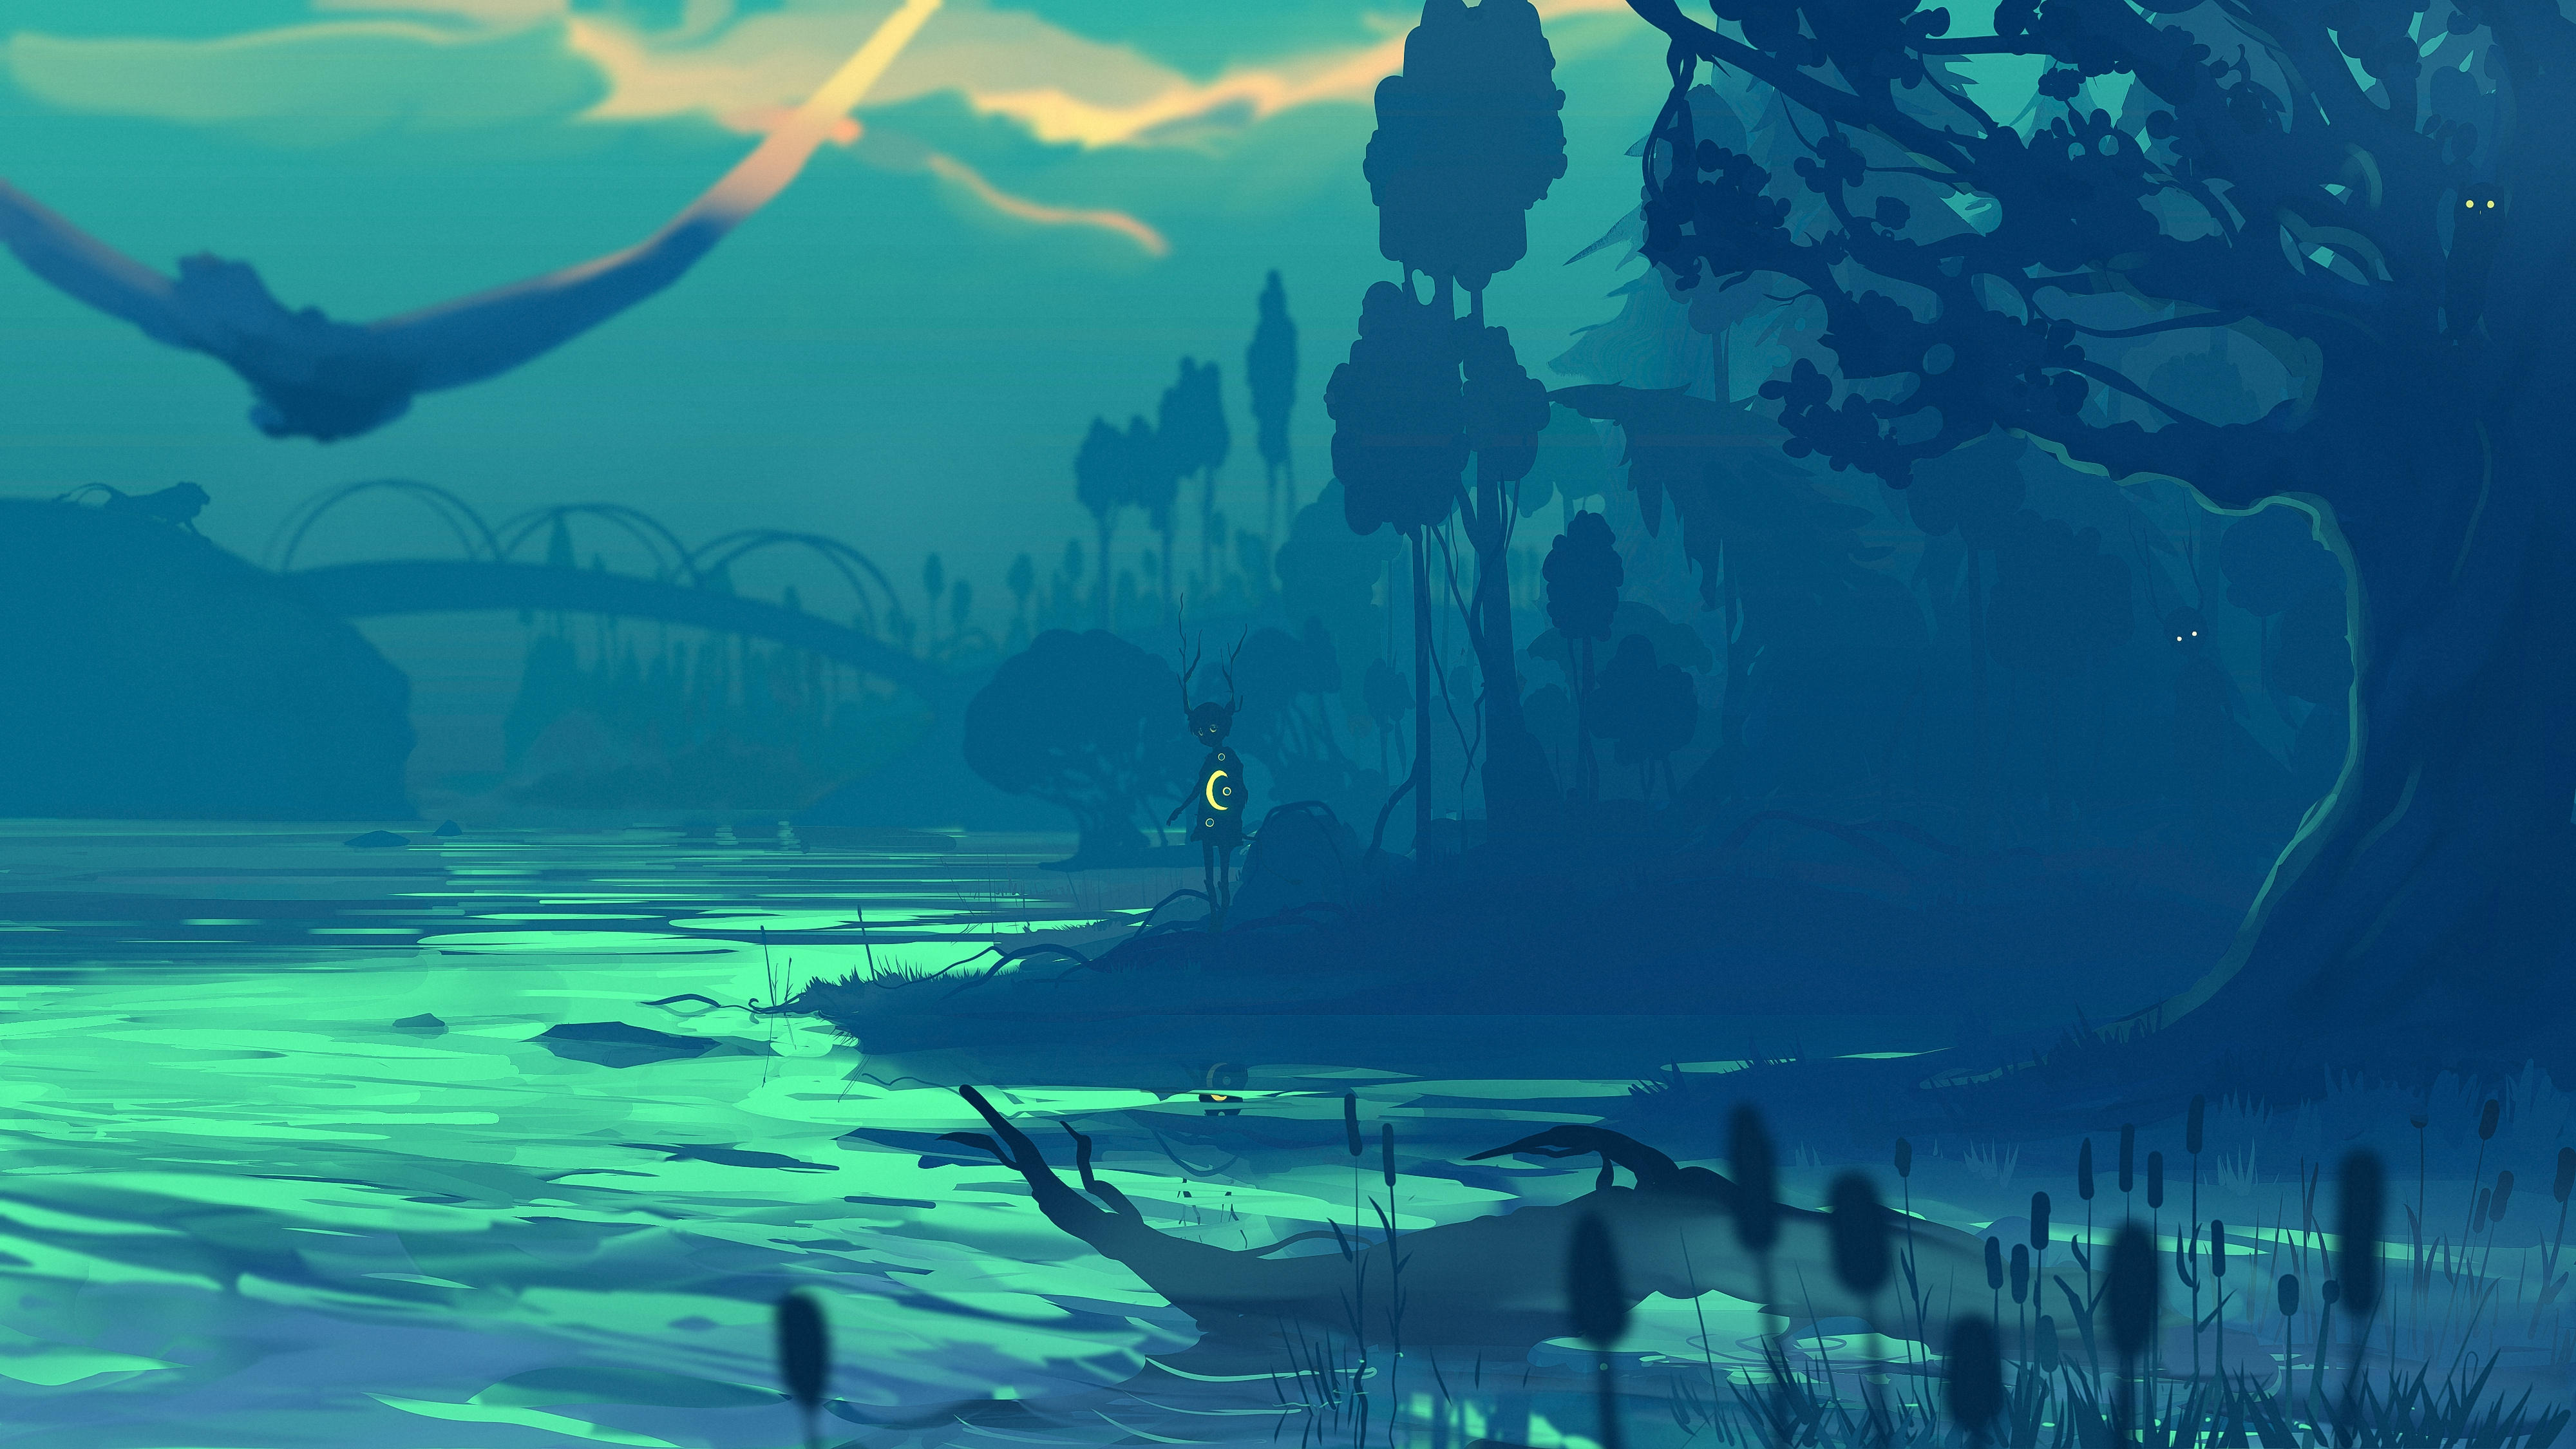 141894 download wallpaper Rivers, Shore, Bank, Silhouette, Dark, Art screensavers and pictures for free